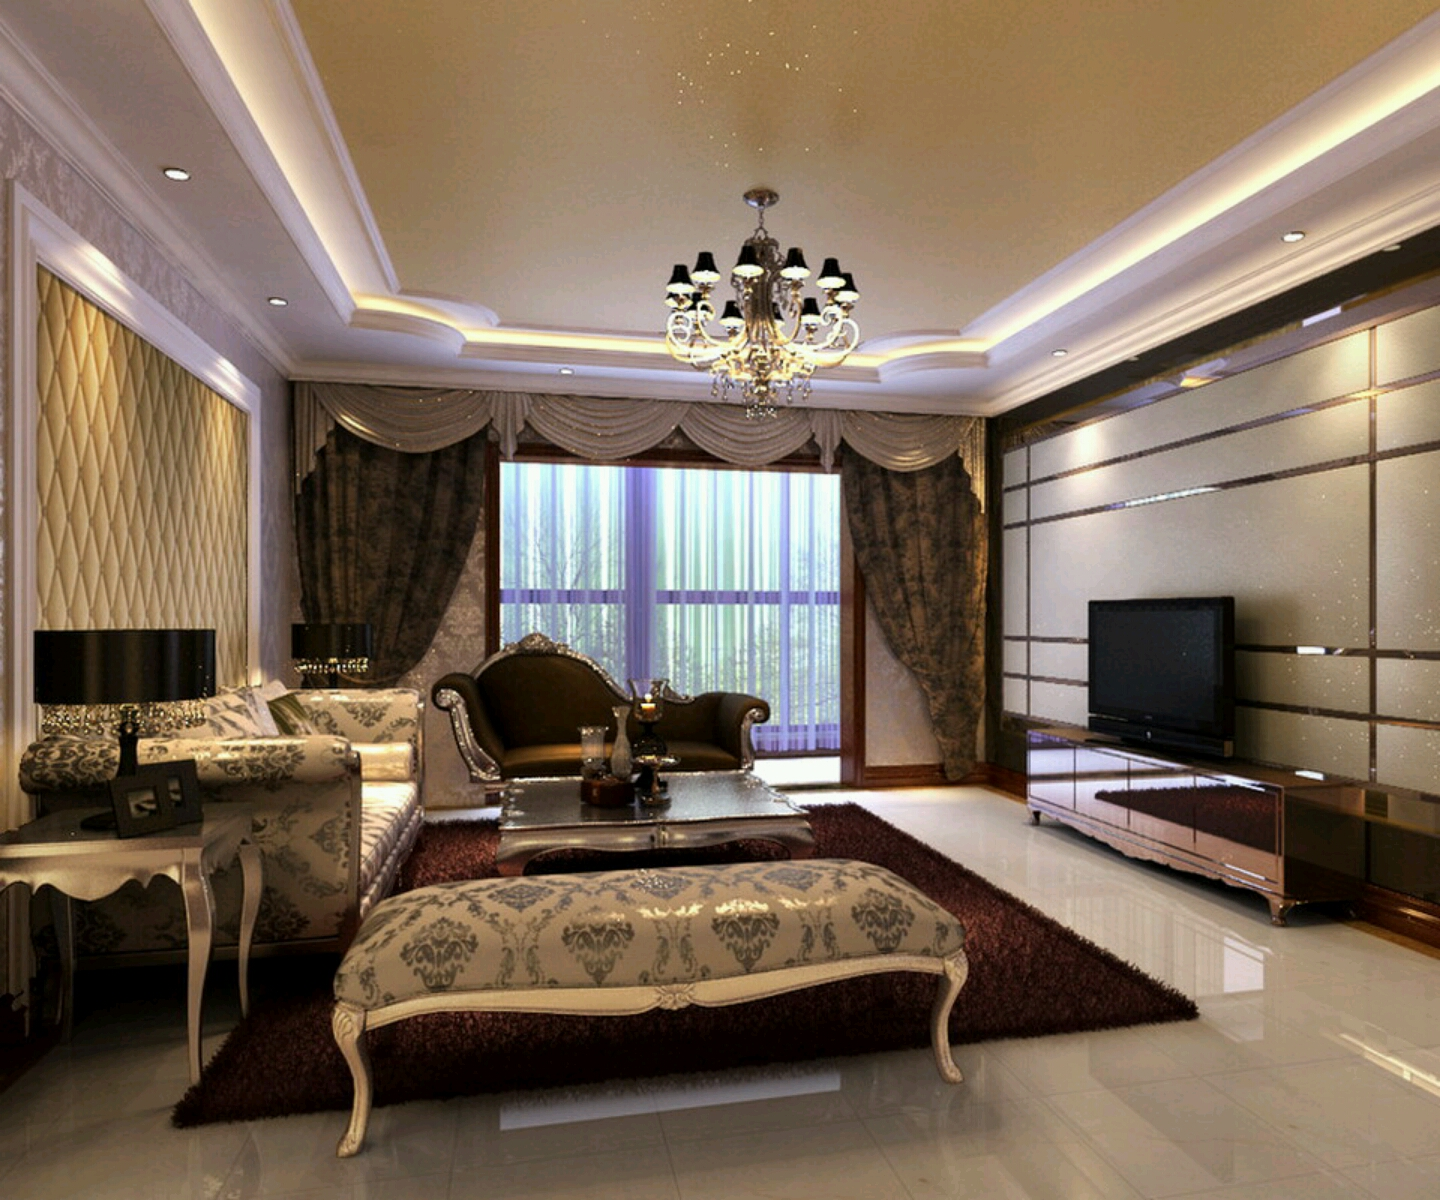 New home designs latest luxury homes interior decoration living room designs ideas House interior design